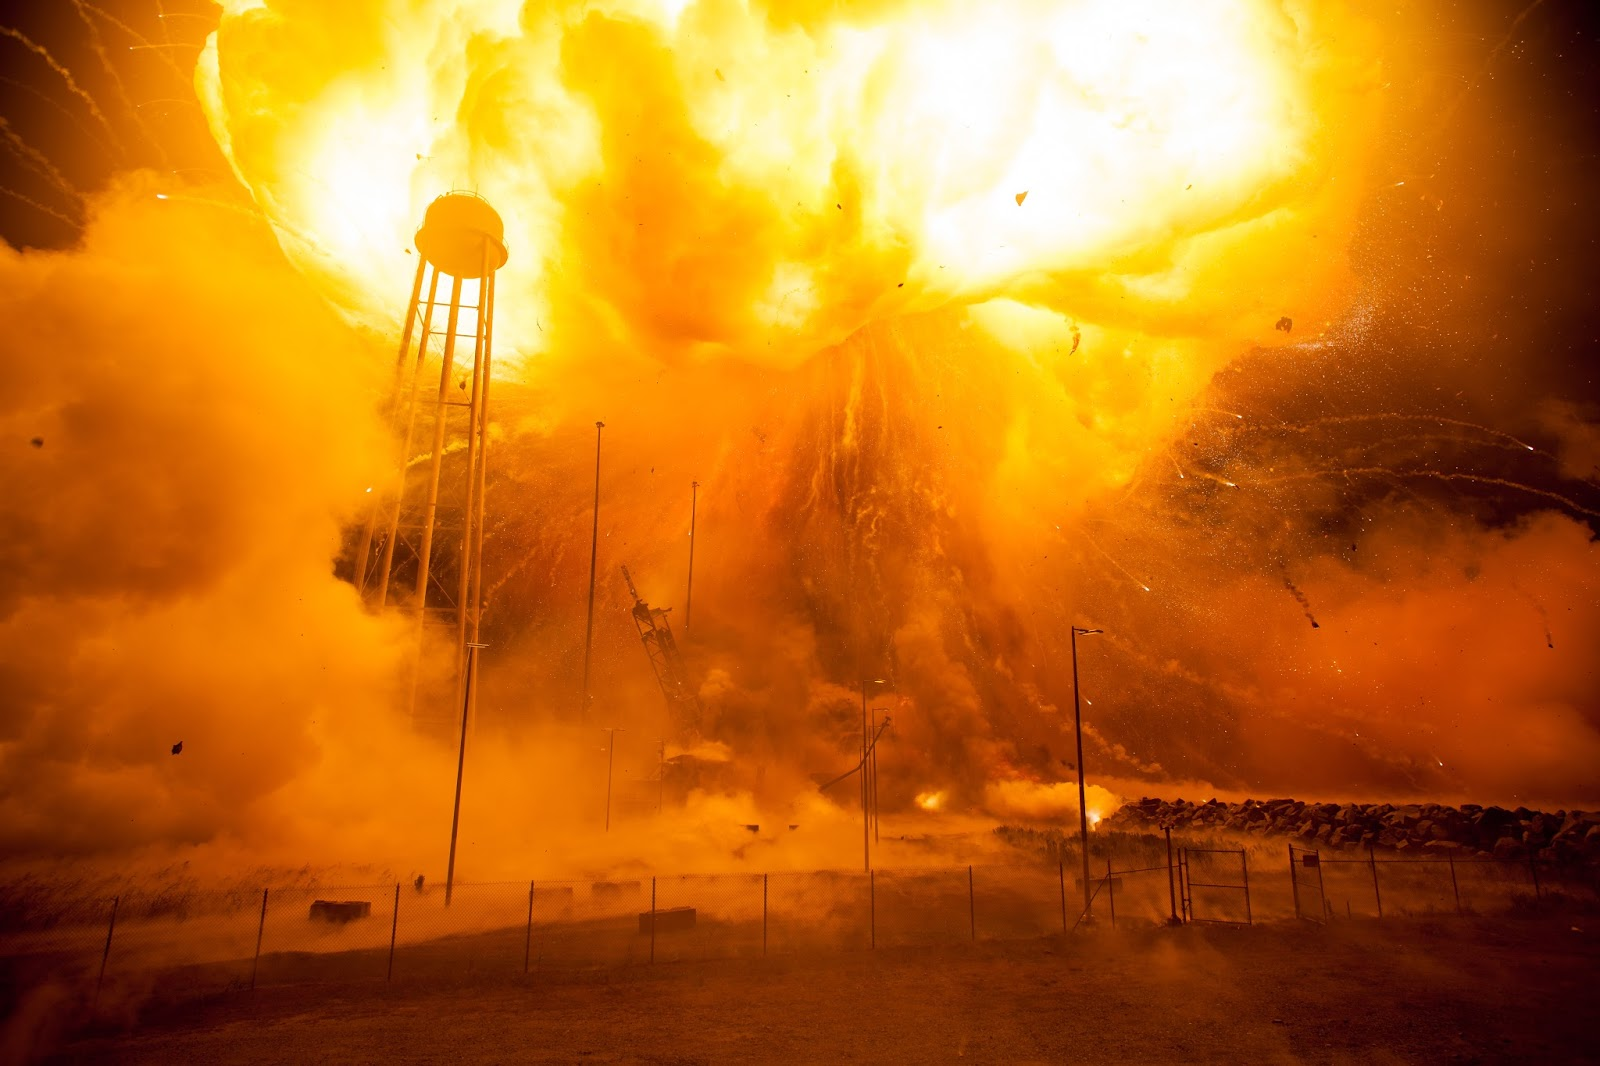 Antares Oct. 28, 2014